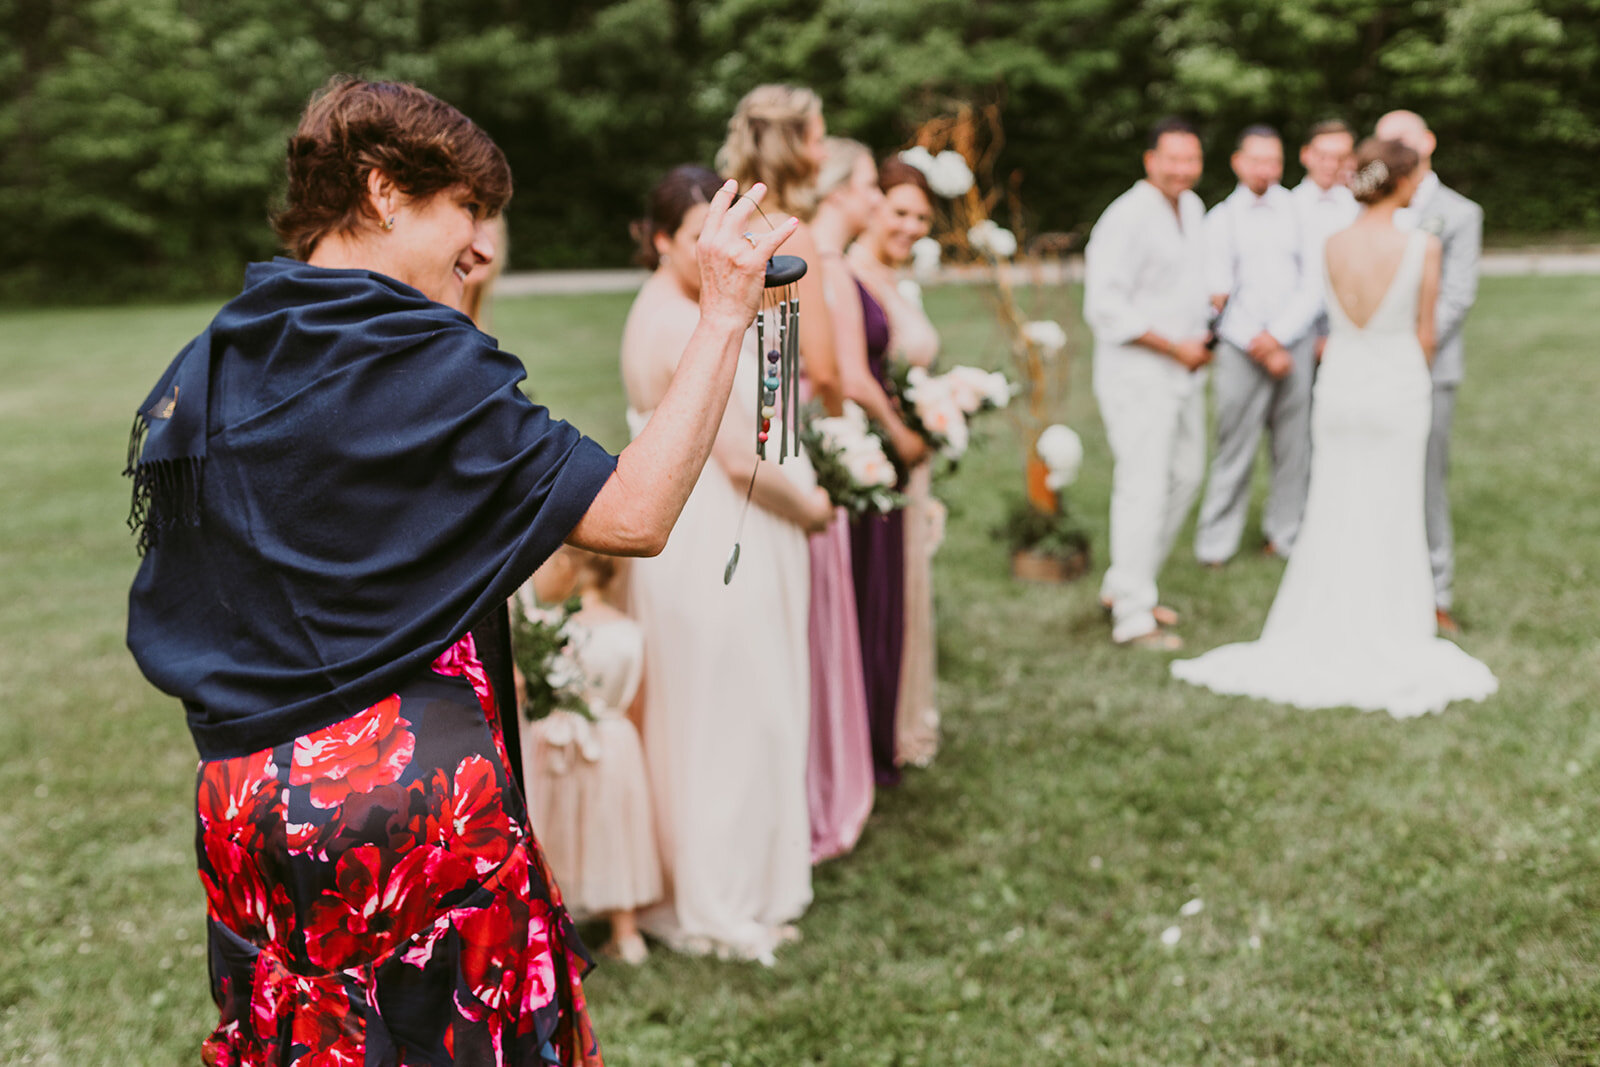 Matt+Katie_WEDDING_MJPHOTO2019-457_websize.jpg